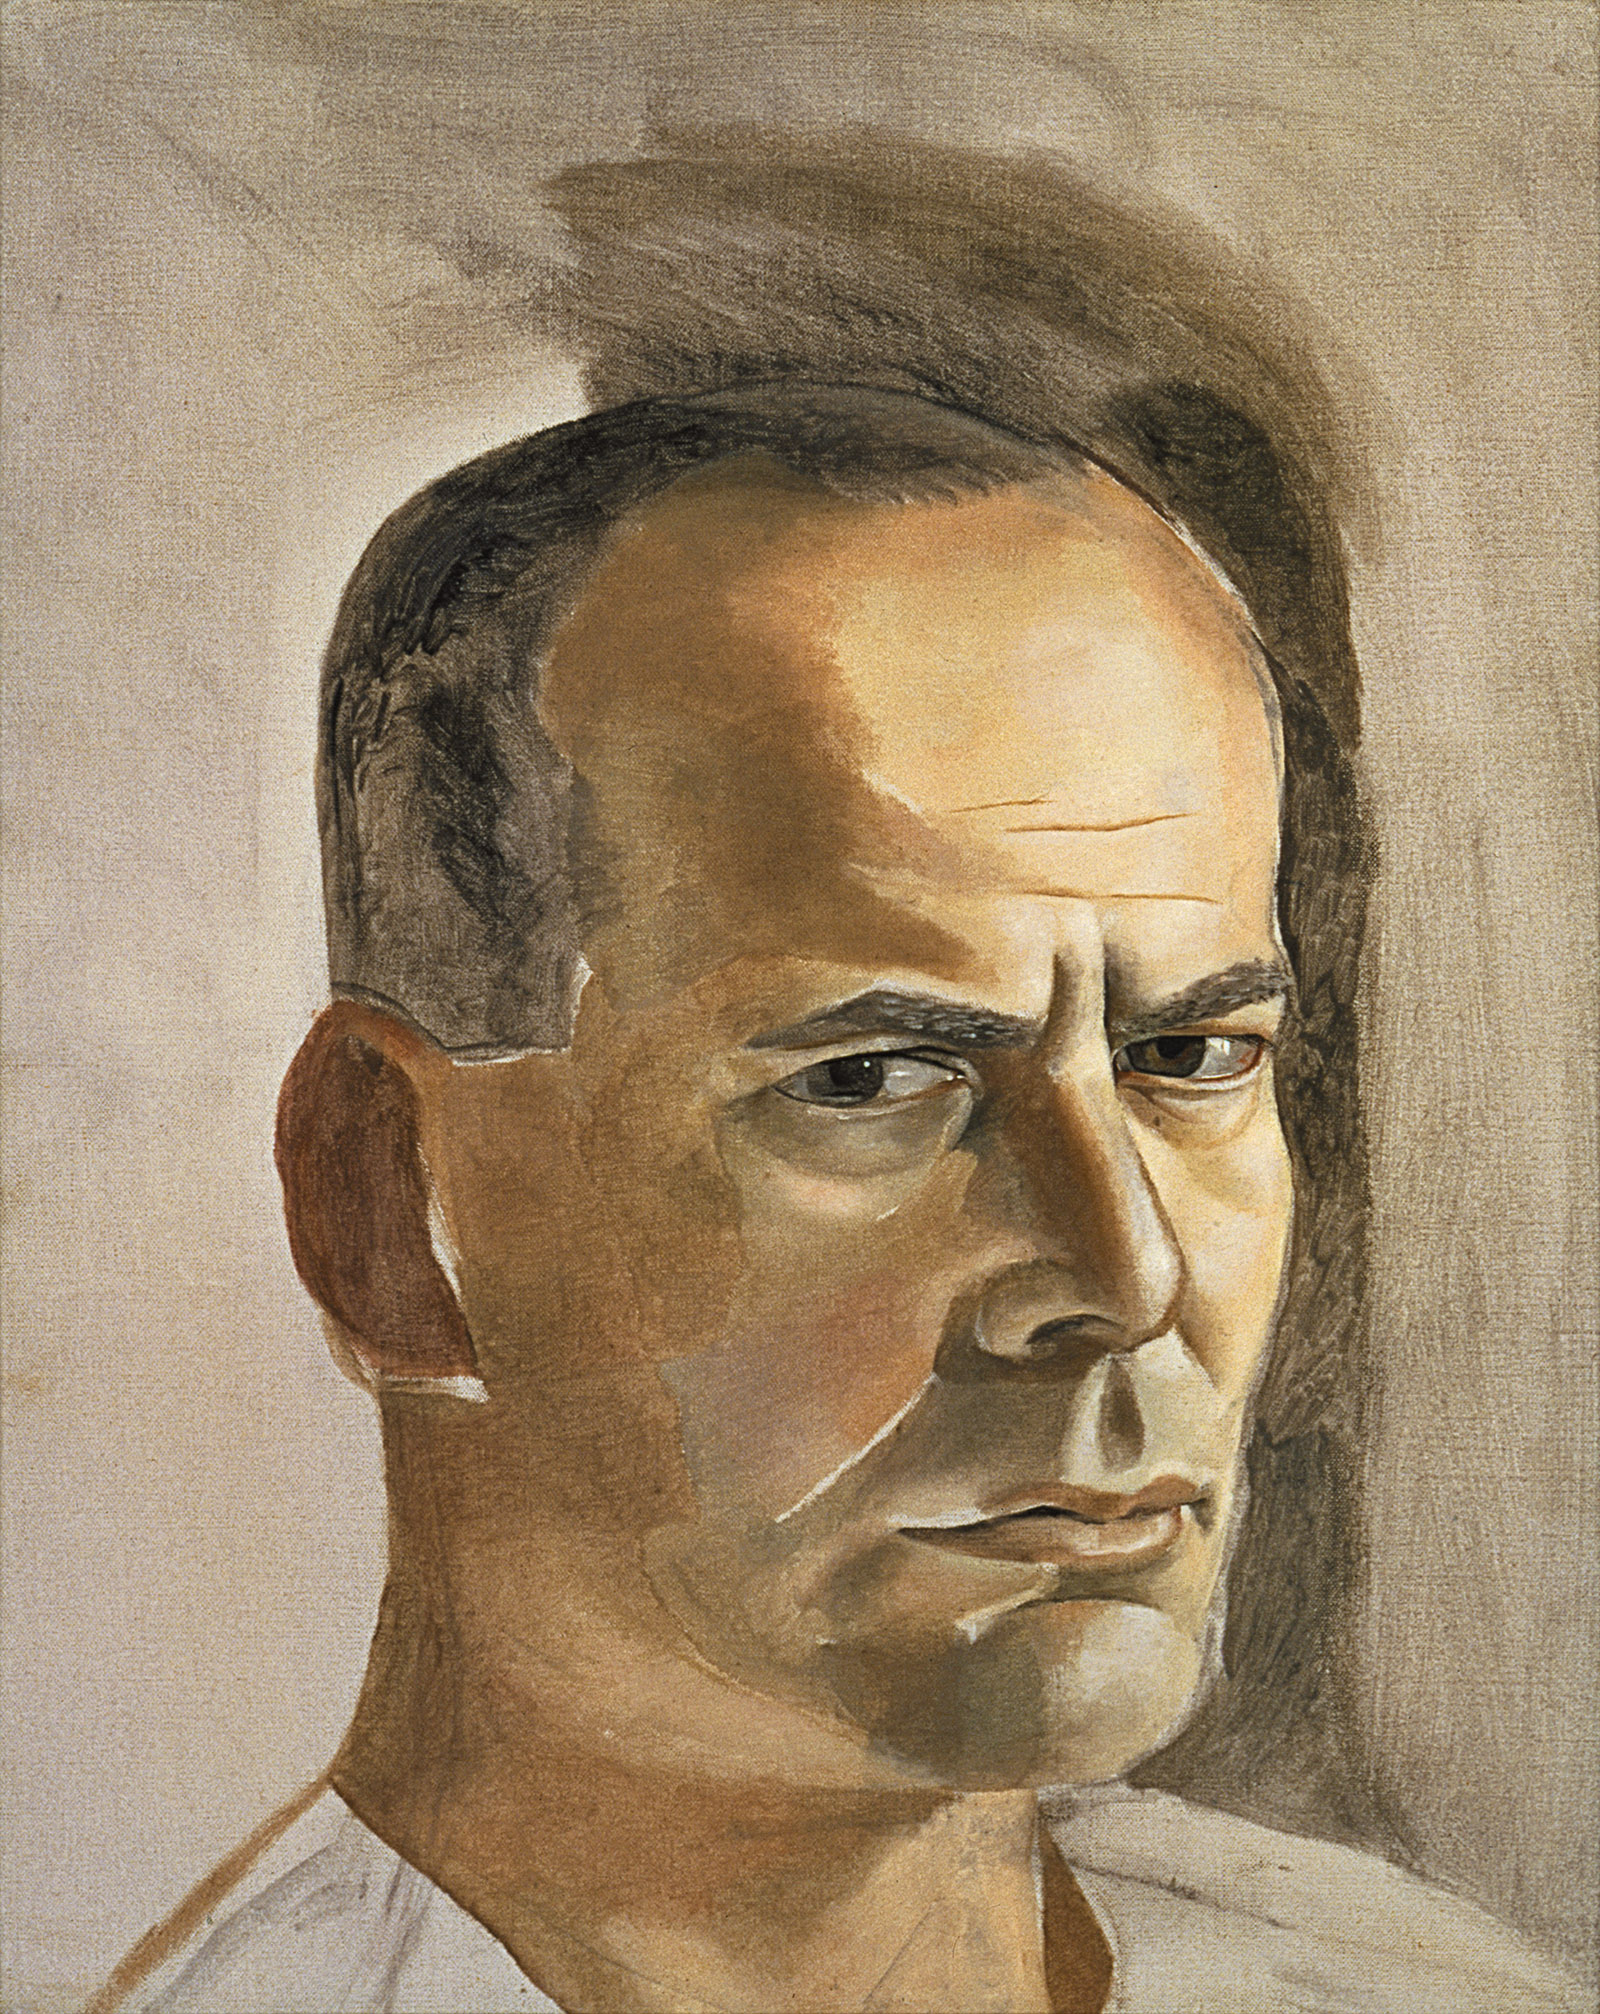 Lucian Freud: Portrait of Lincoln Kirstein, 19 3/4 x 15 1/2 inches, 1950